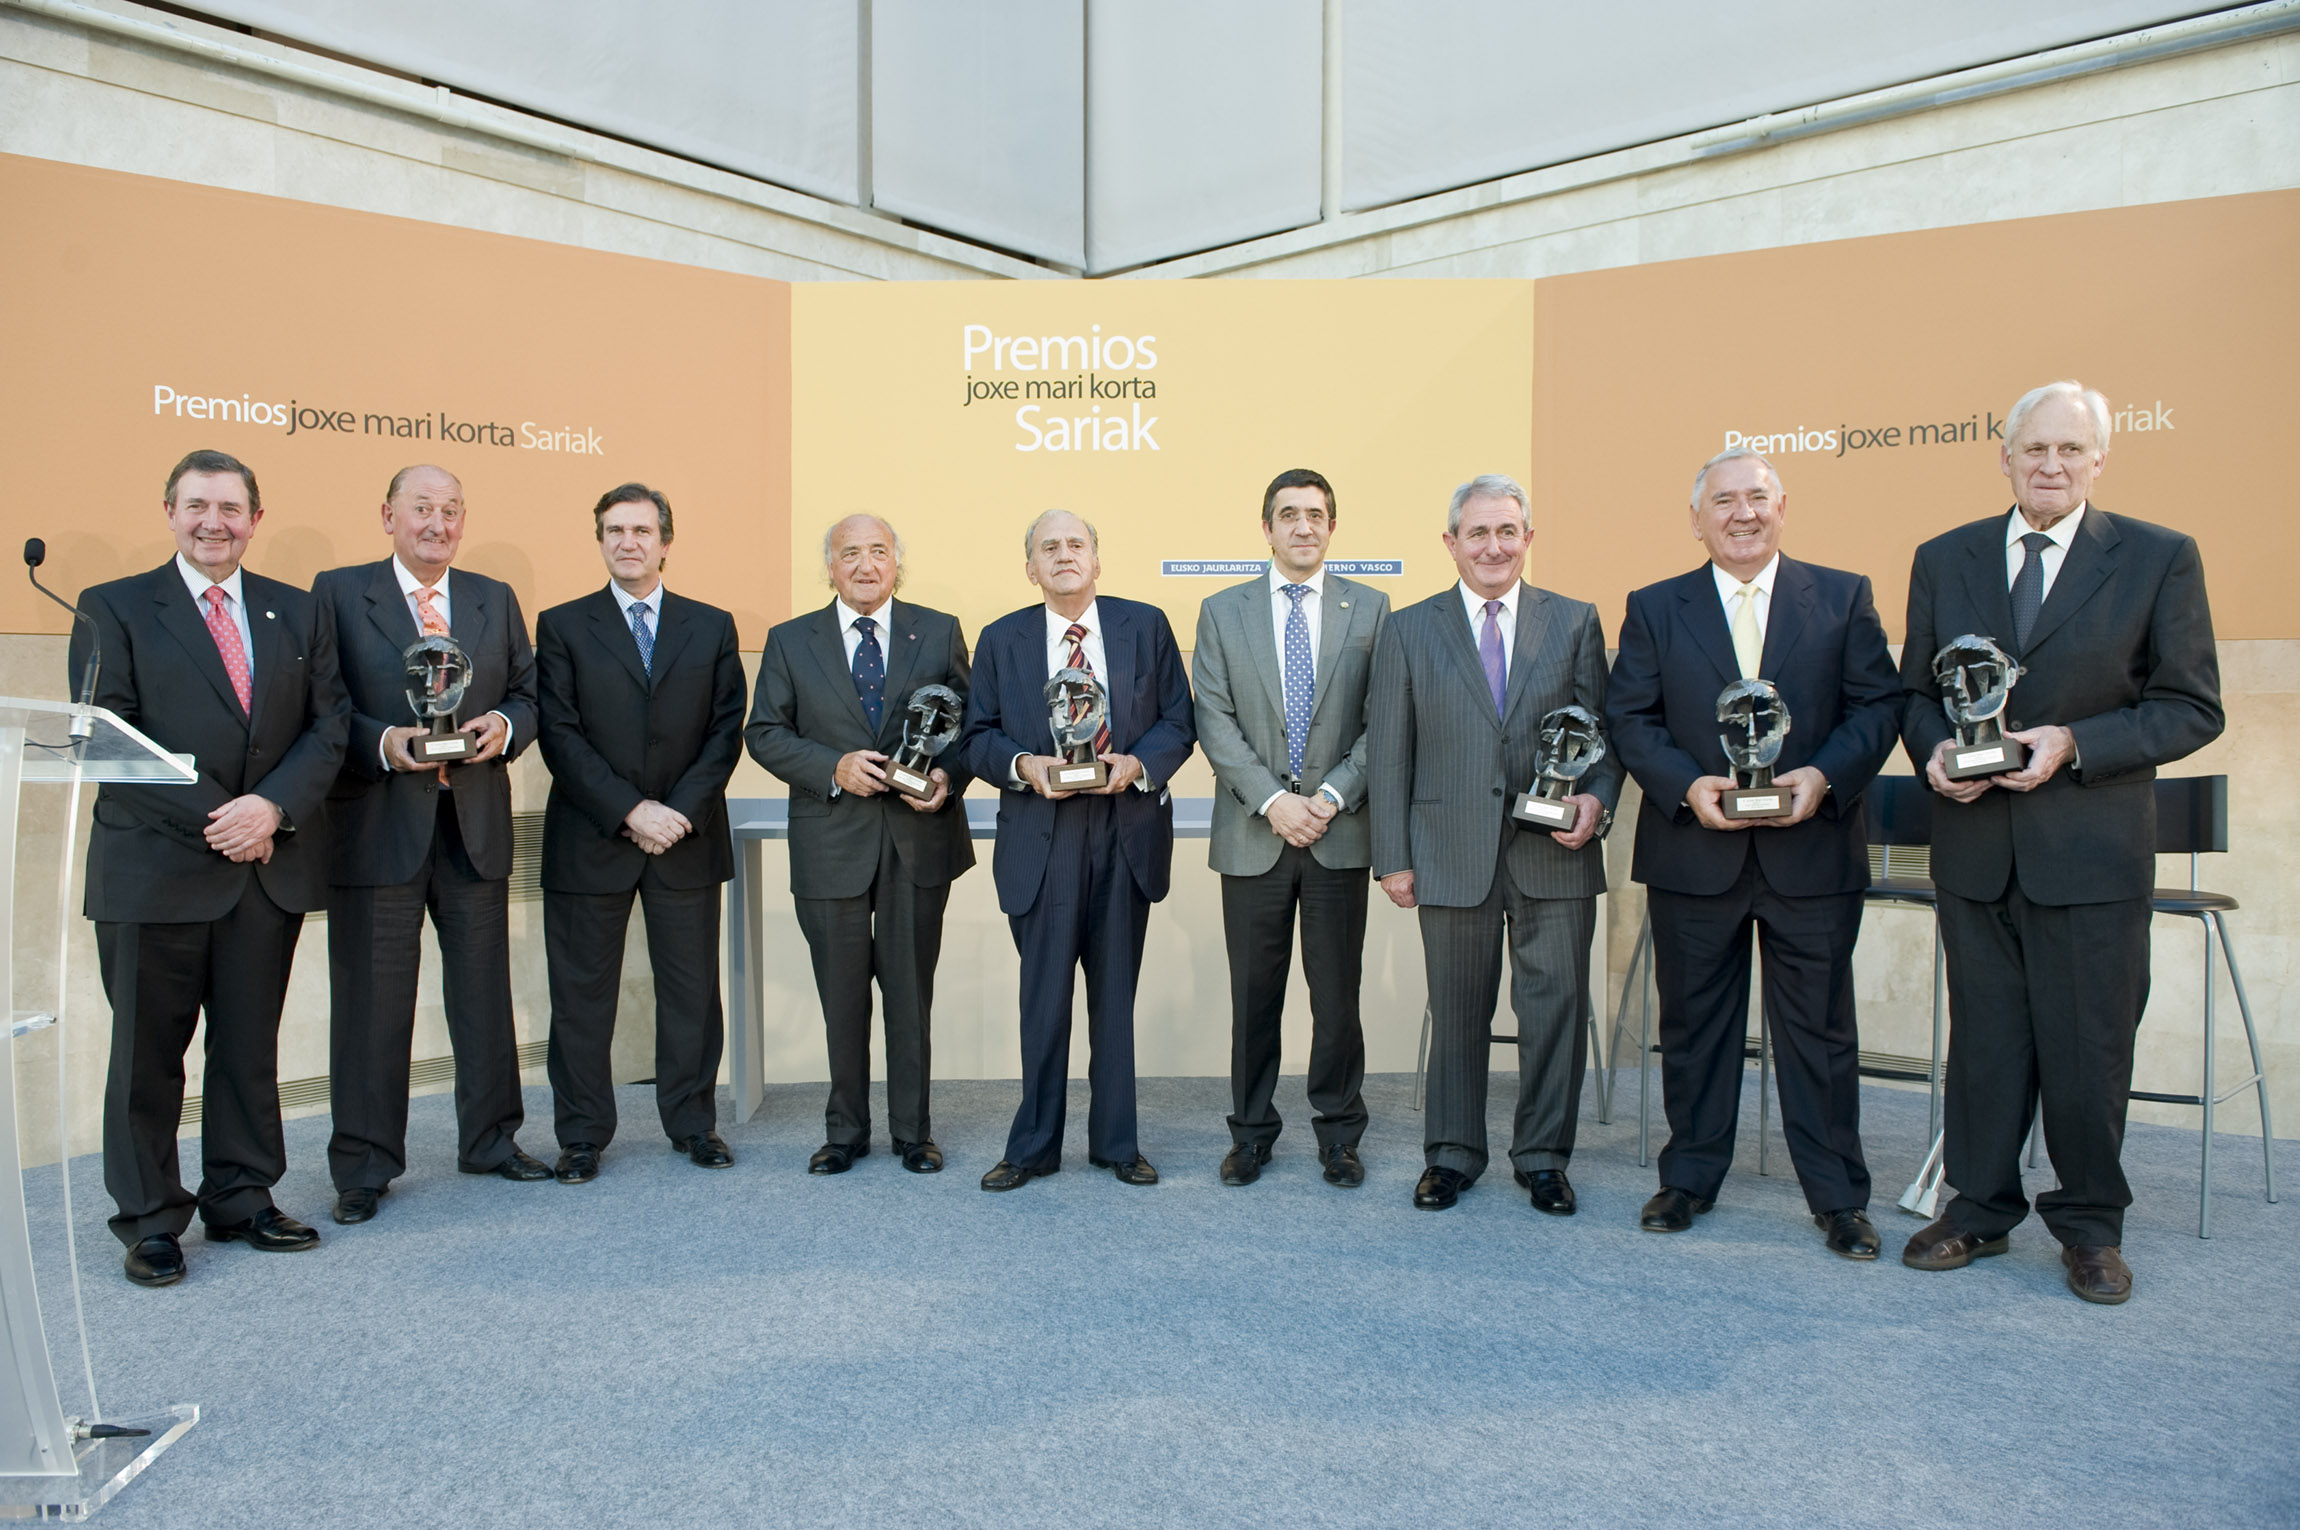 The Lehendakari presents the Korta Awards to six entrepreneurs: Ruiz de Apodaka, Quintana, Caballero, Echarri, Aurtenetxea and Grijelmo